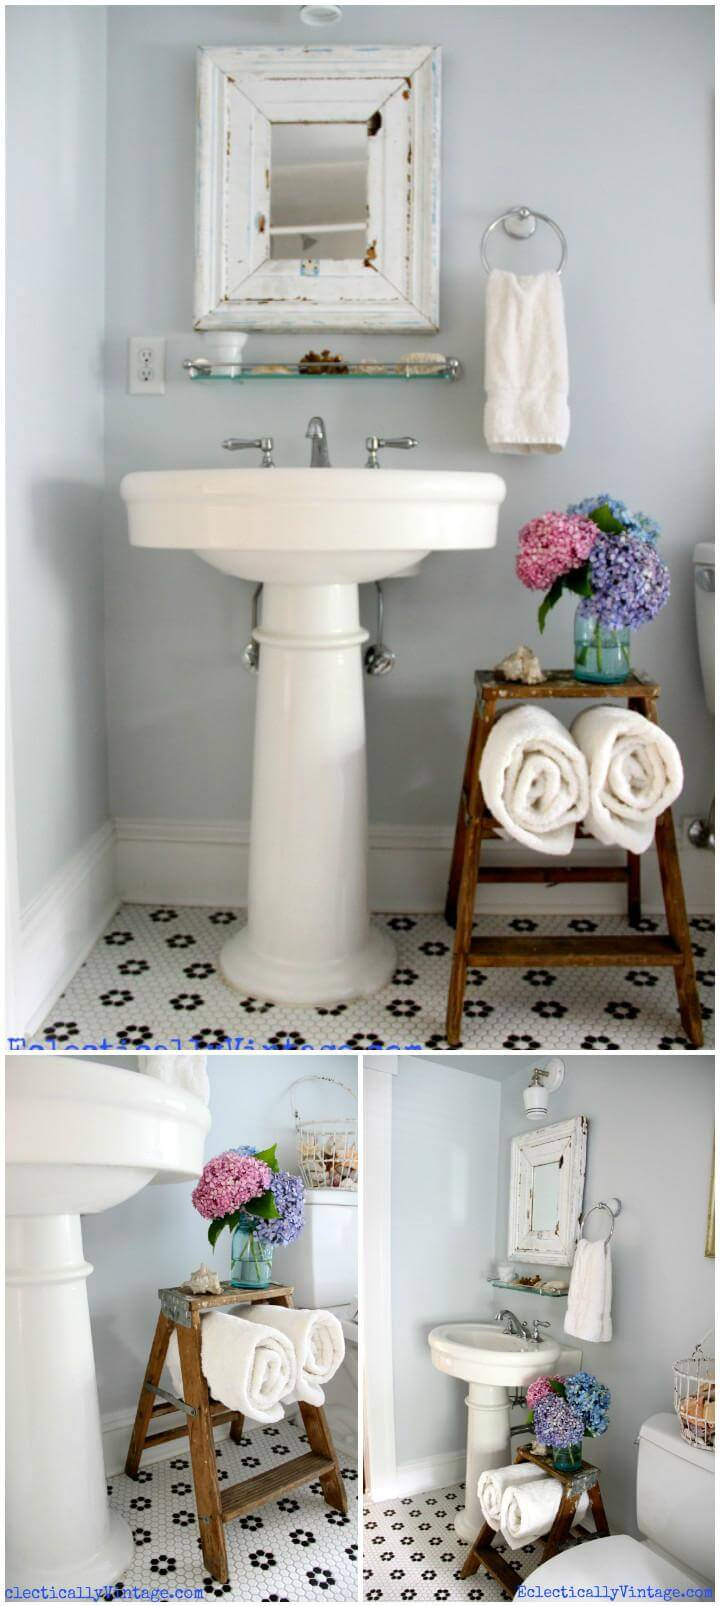 50 DIY Bathroom Projects to Remodel Step by Step  Page 5